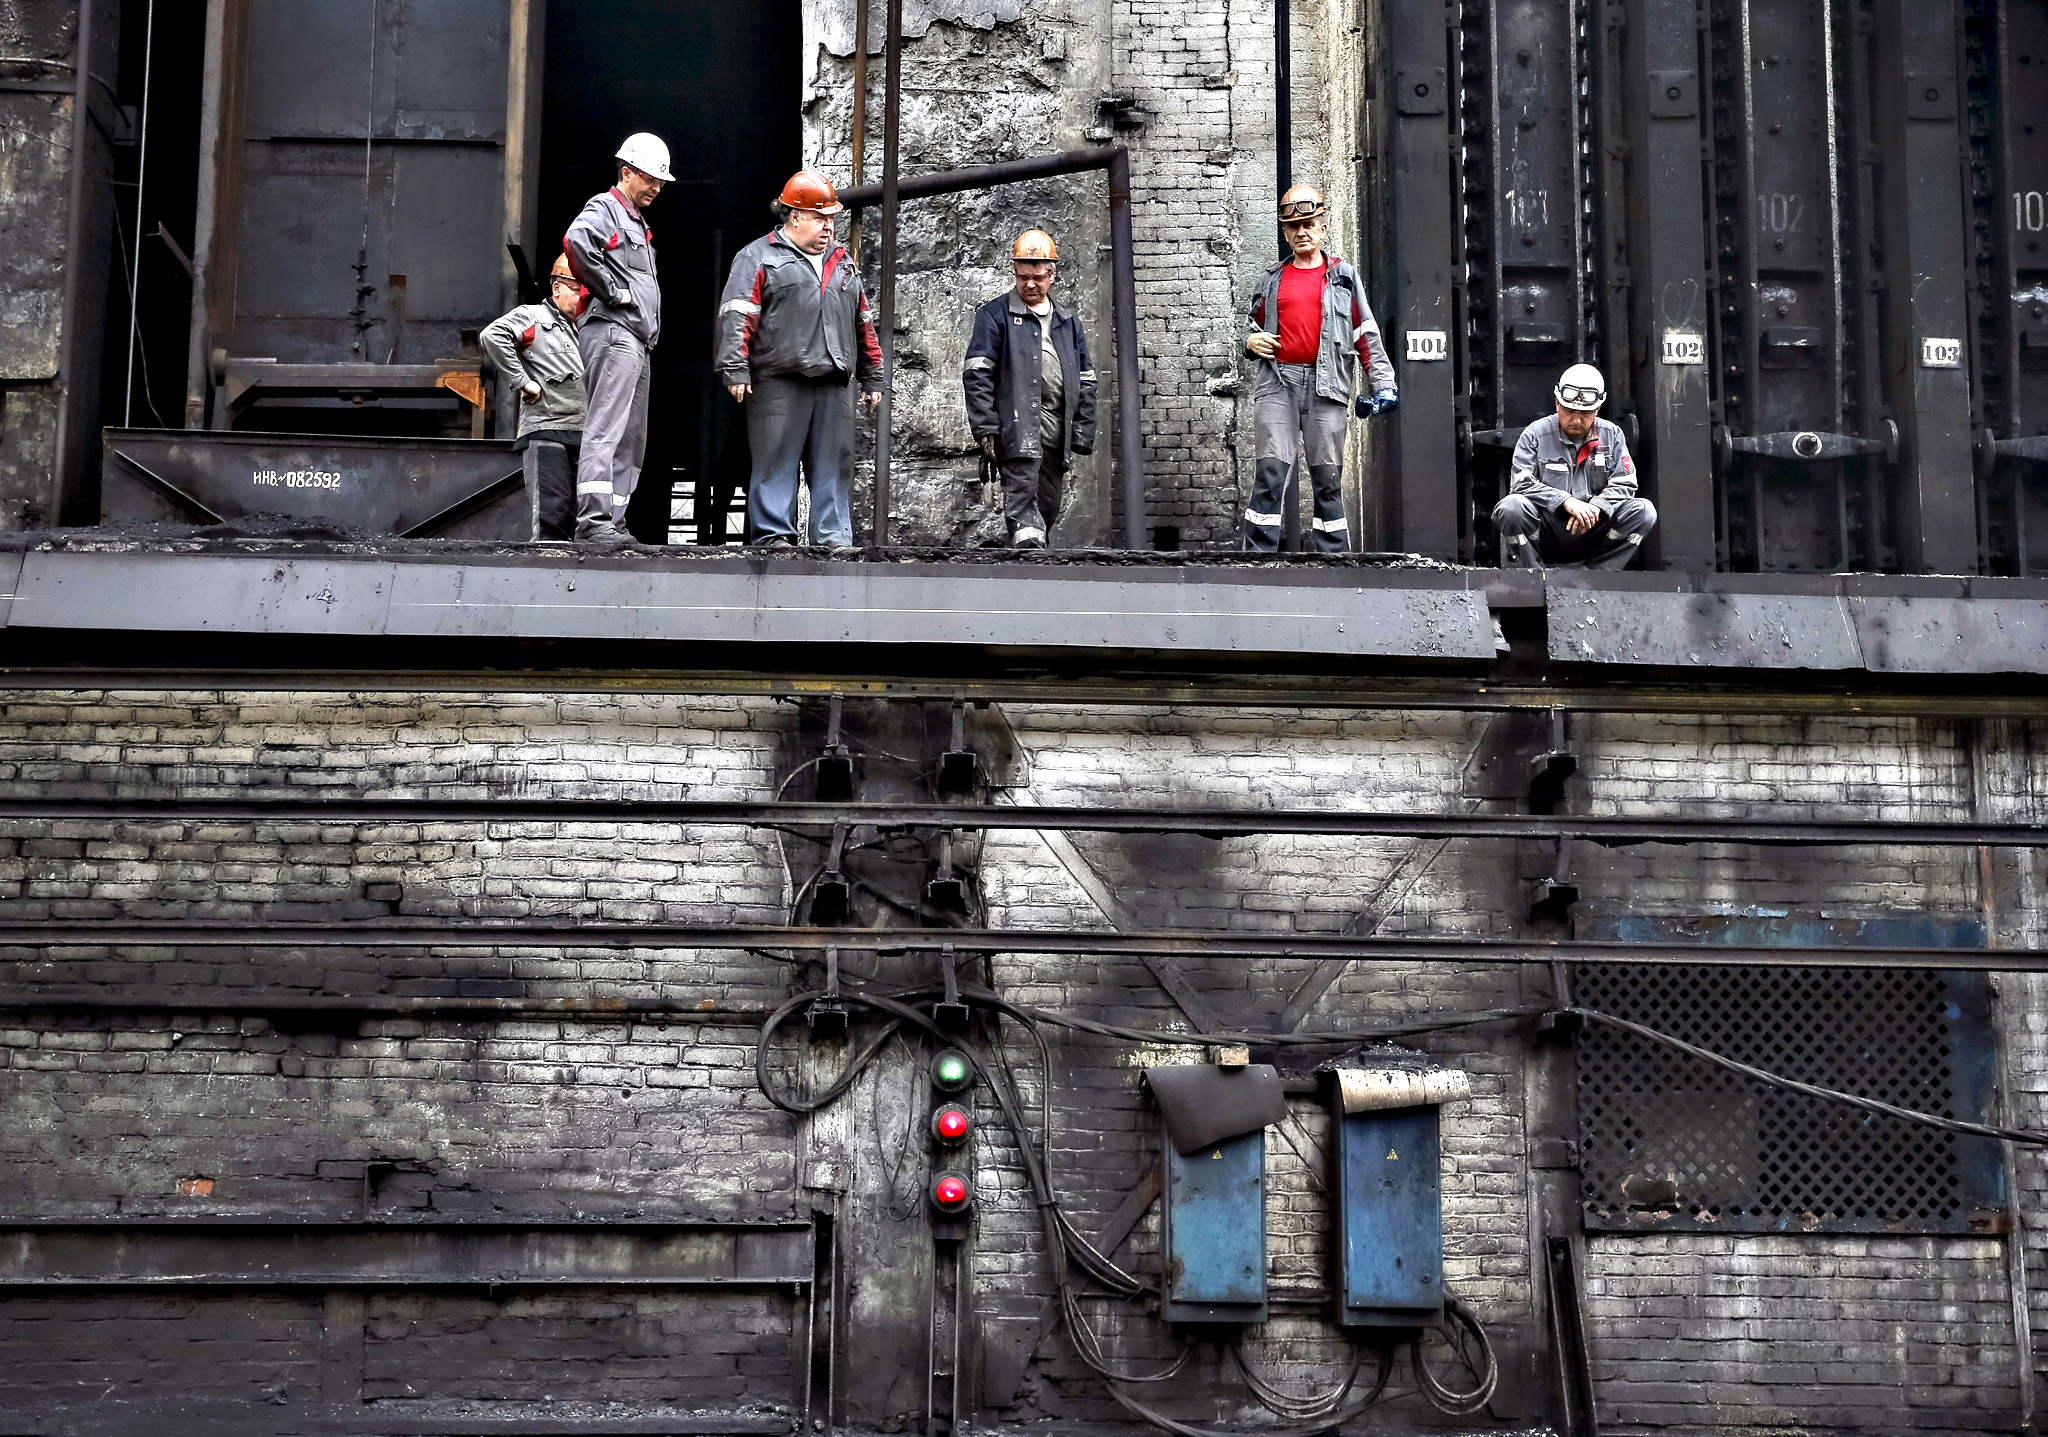 Workers are seen at a coke plant in the town of Avdiyivka near Donetsk, eastern Ukraine. Situated close to the 'contact line' between Ukrainian government forces and well-armed rebels, the Avdiyivka Coking Plant outside the rebel-held regional capital, Donetsk, has been hit by about 230 rocket and artillery attacks since hostilities erupted over a year ago. The Avdiyivka plant, owned by industrial tycoon Rinat Akhmetov's Metinvest group, is one of Europe's biggest coking plants and provides the fuel for the steelmaking industry, itself a vital branch of Ukraine's economy